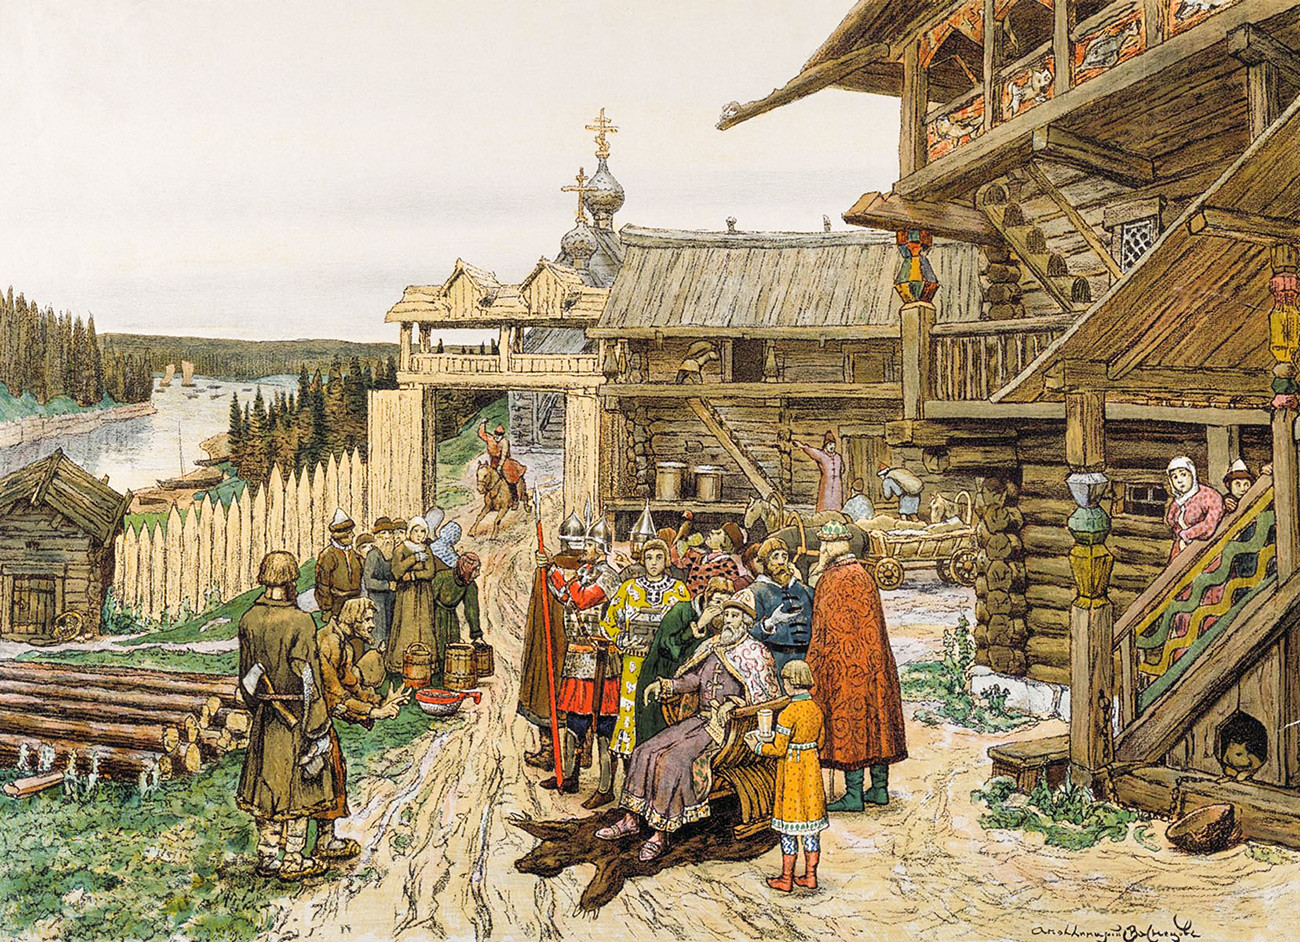 'At the court of a Russian prince' by Appolinary Vasnetsov. You can see the prince is the only person seated, which shows his status.